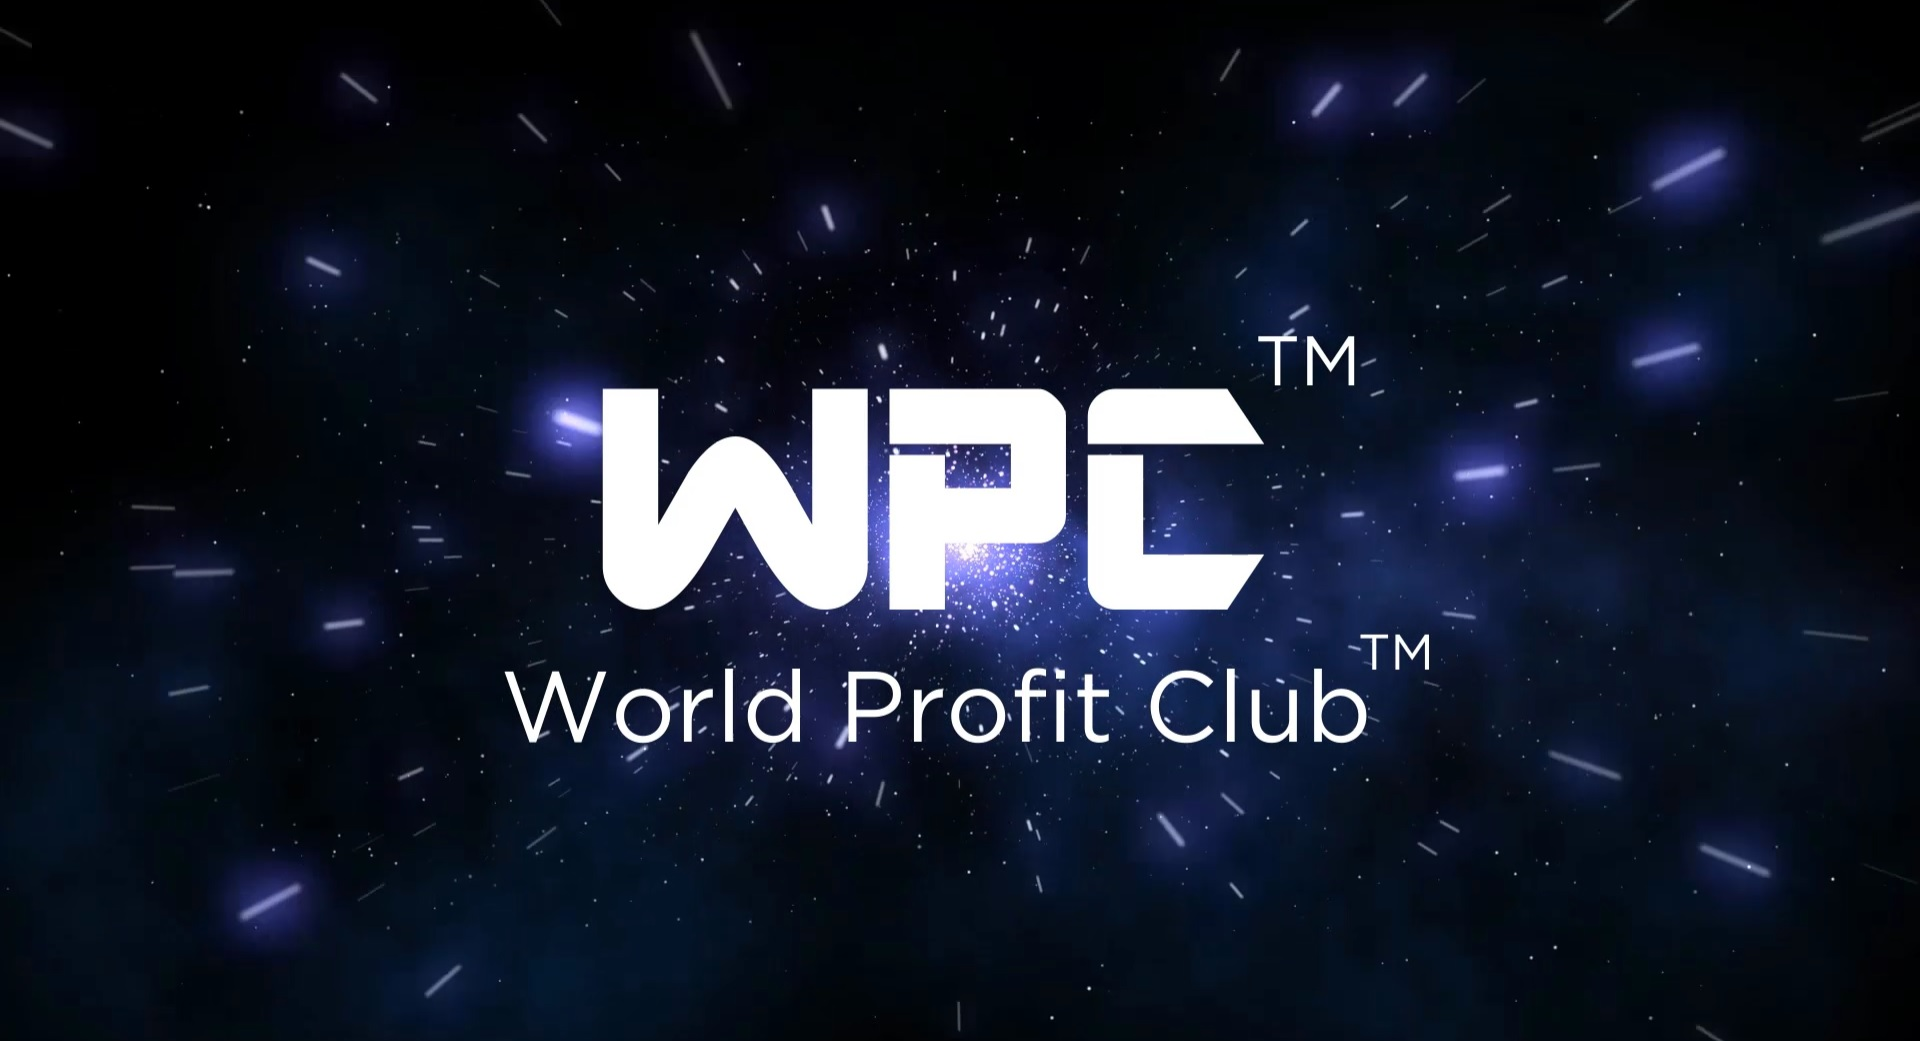 World Profit Club